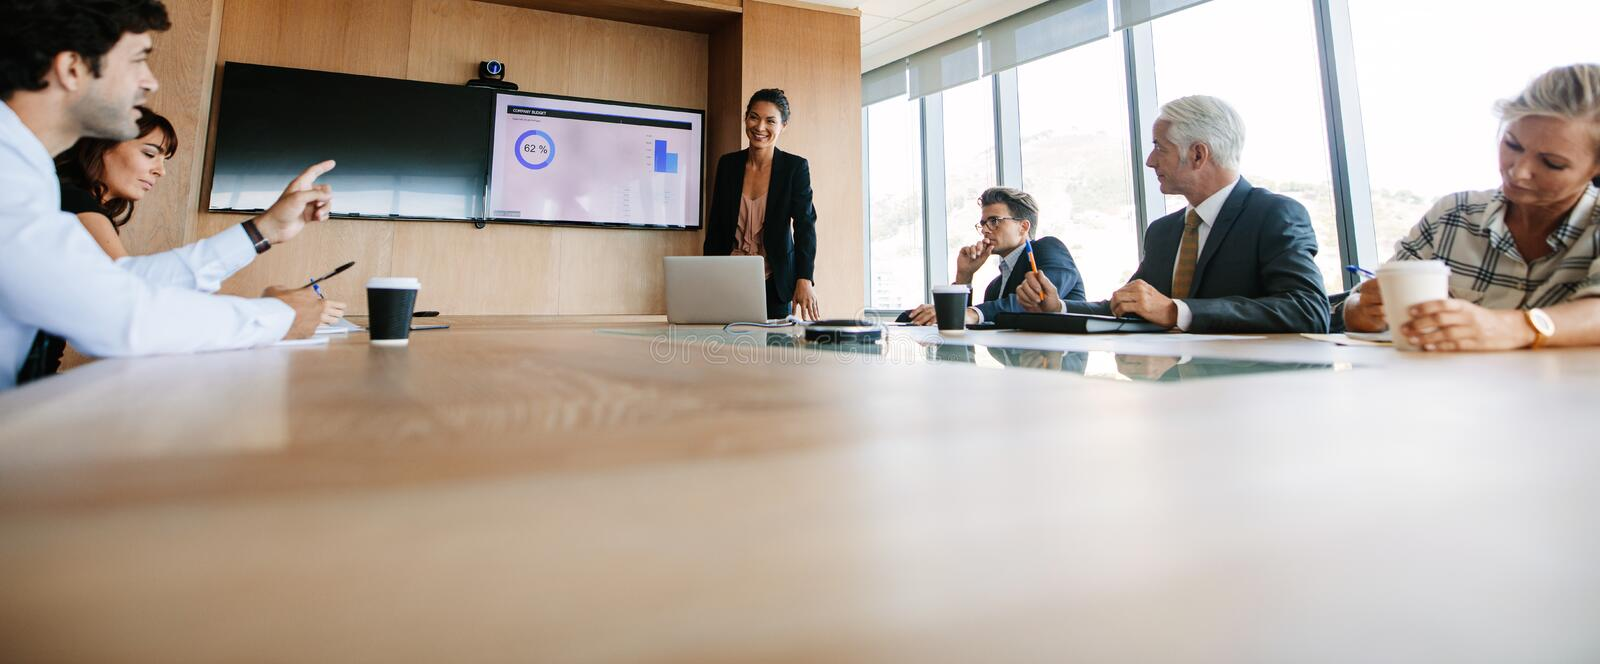 Business people having board meeting in modern office royalty free stock photos